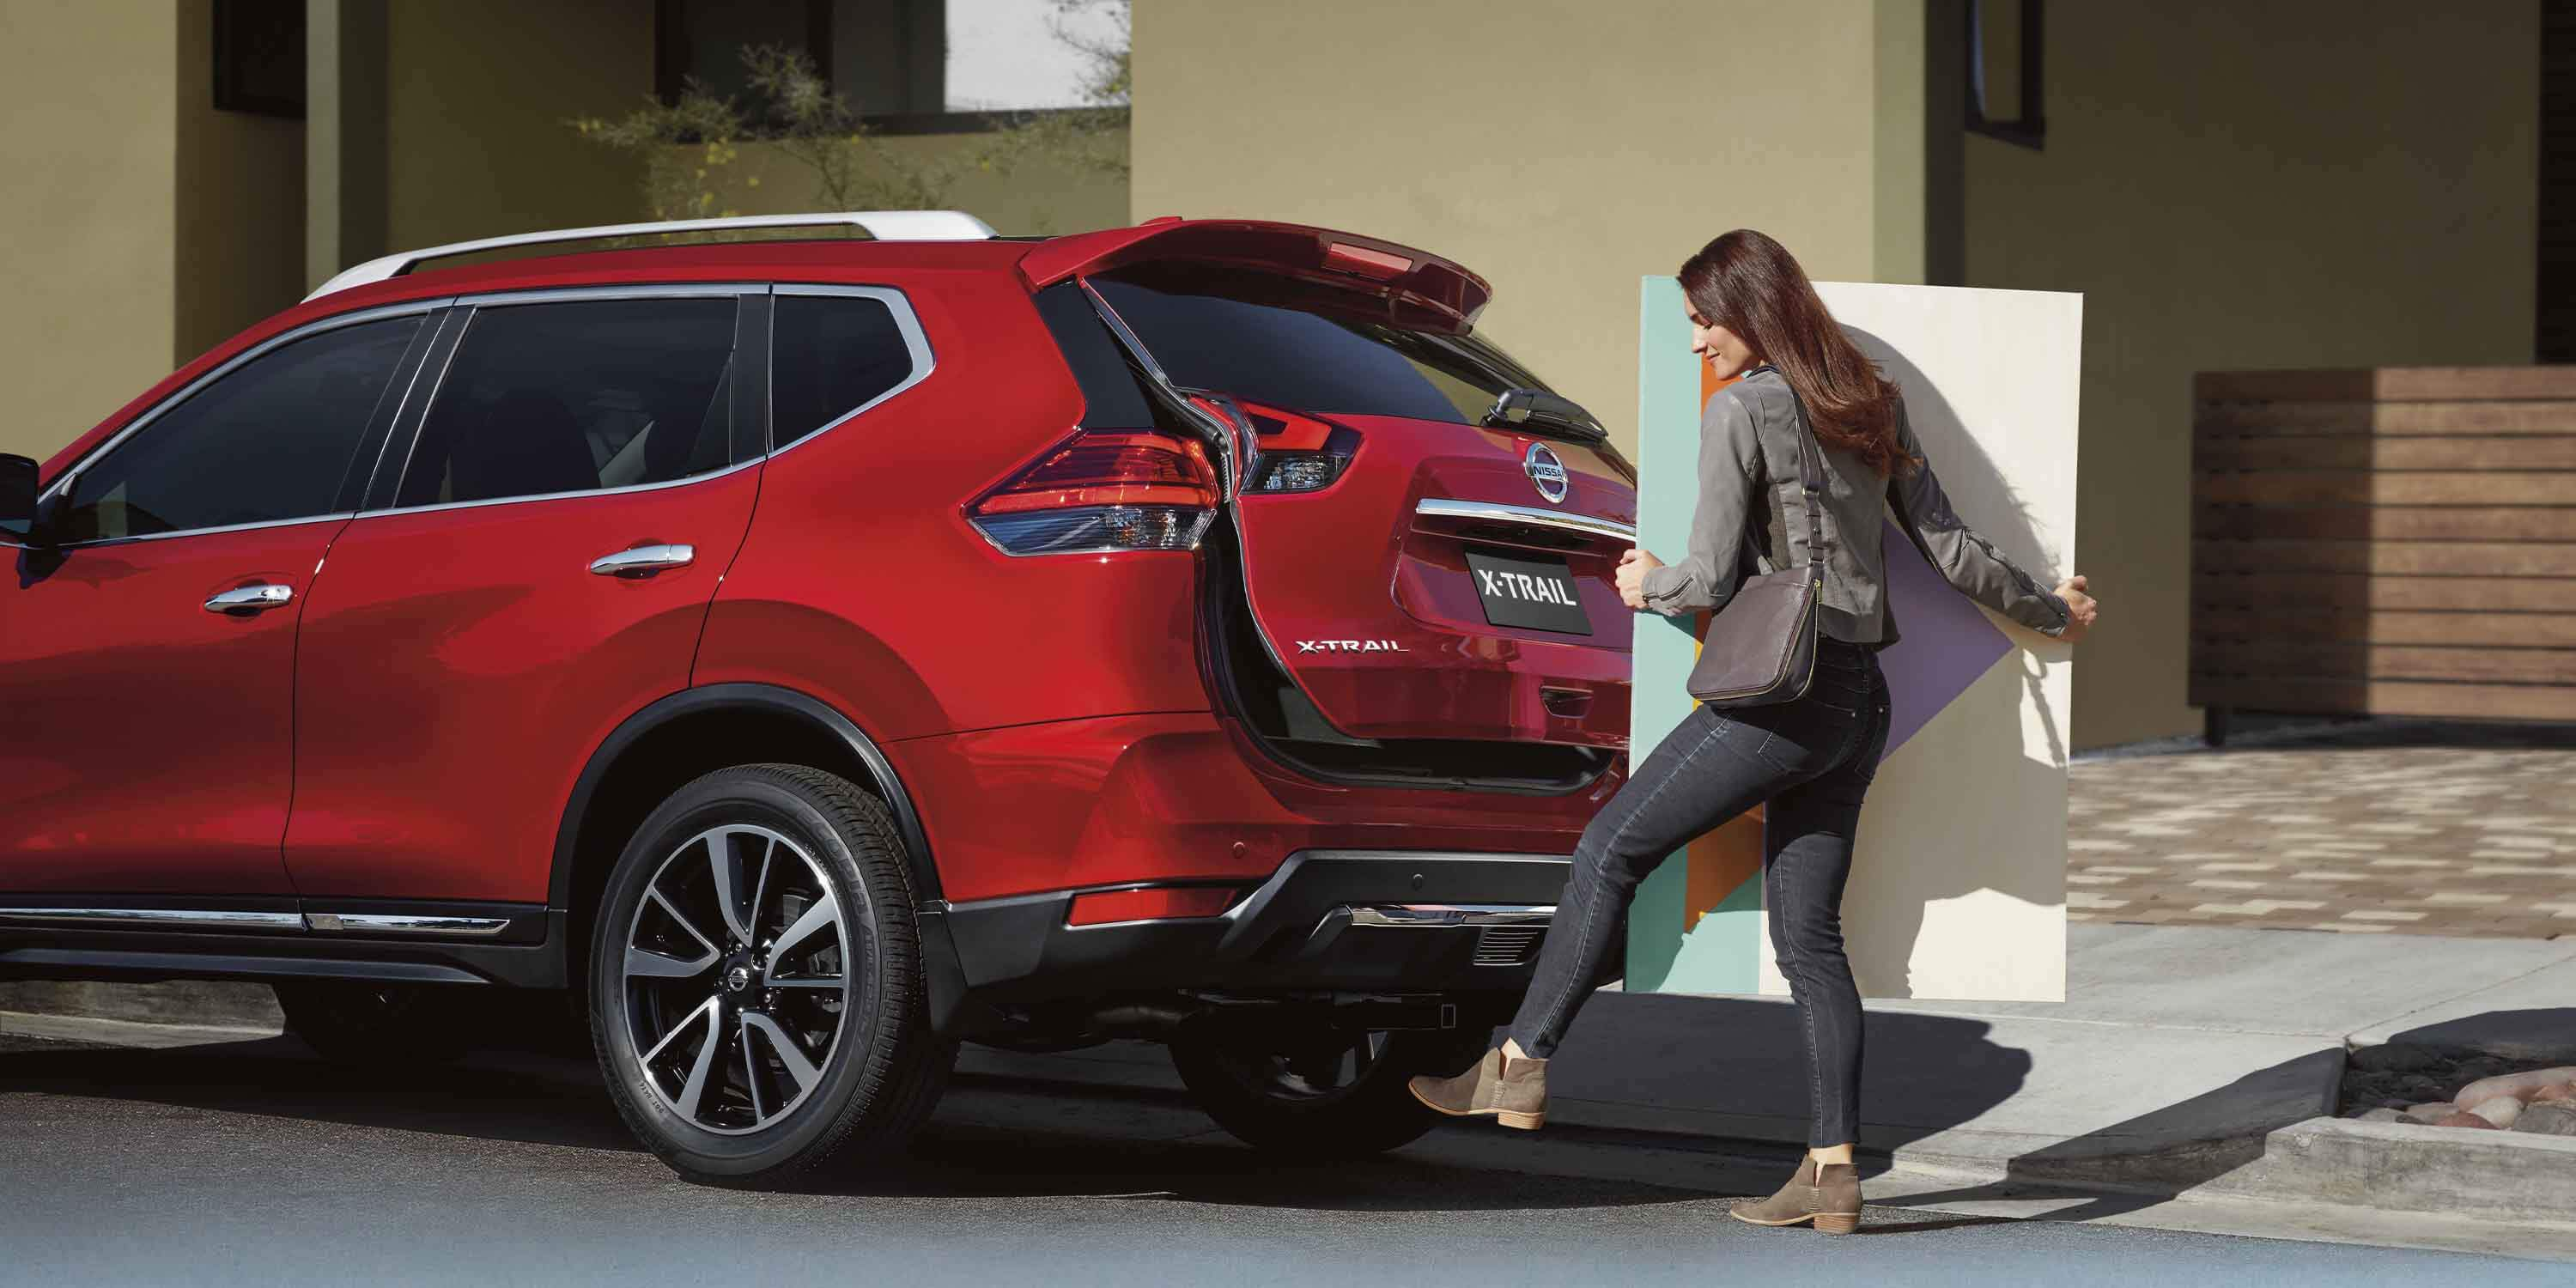 Nissan X Trail The World S Best Selling Suv Nissan Australia